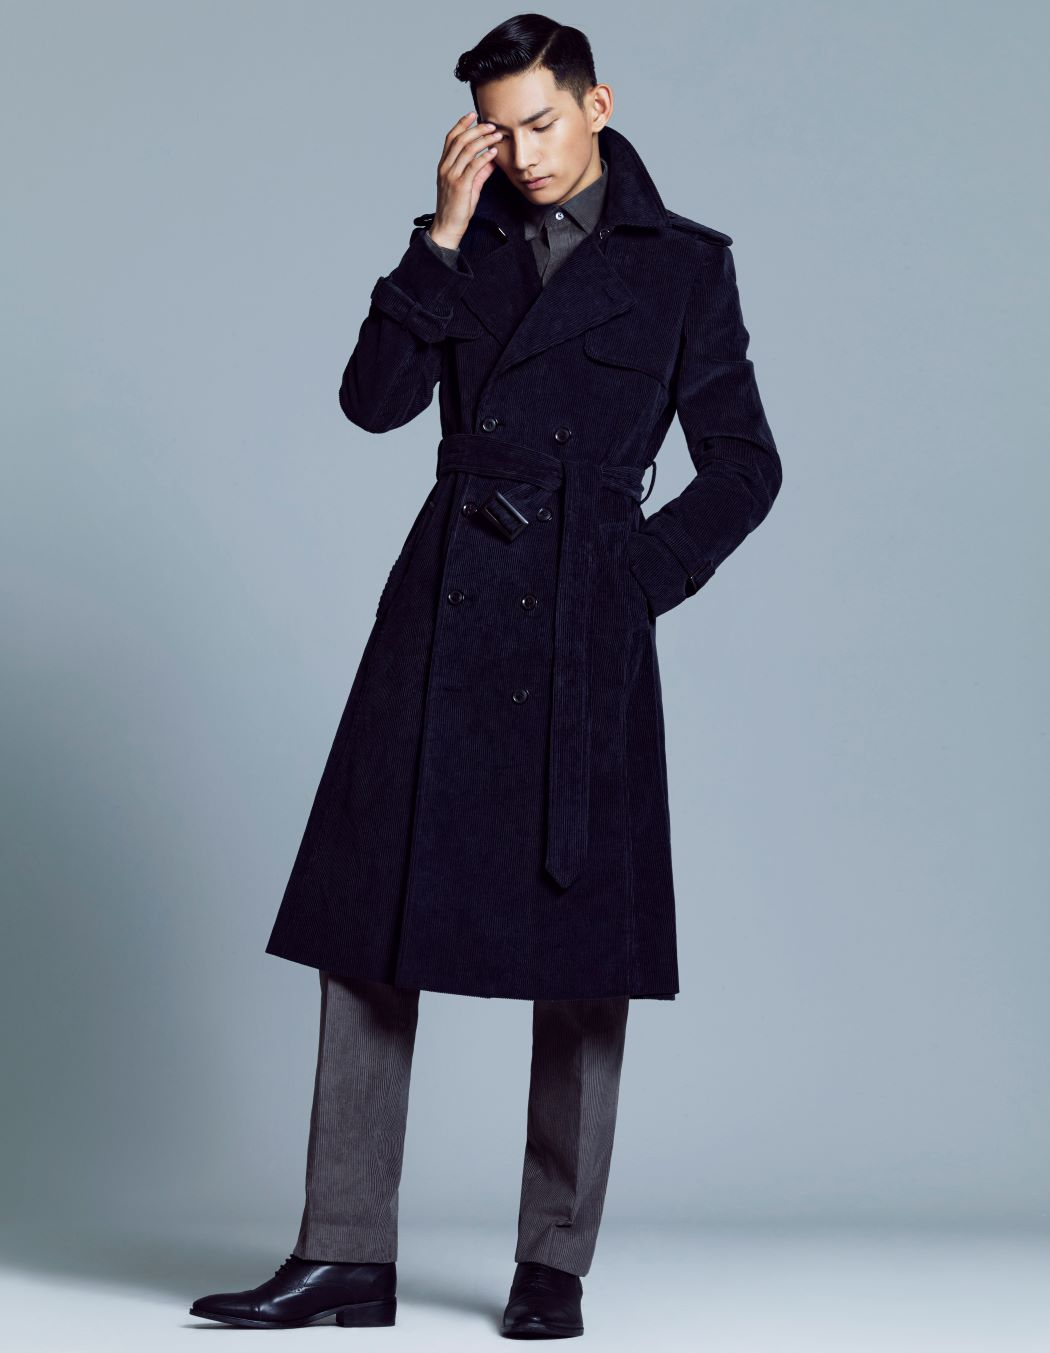 NAVY CORDUROY TRENCH COAT